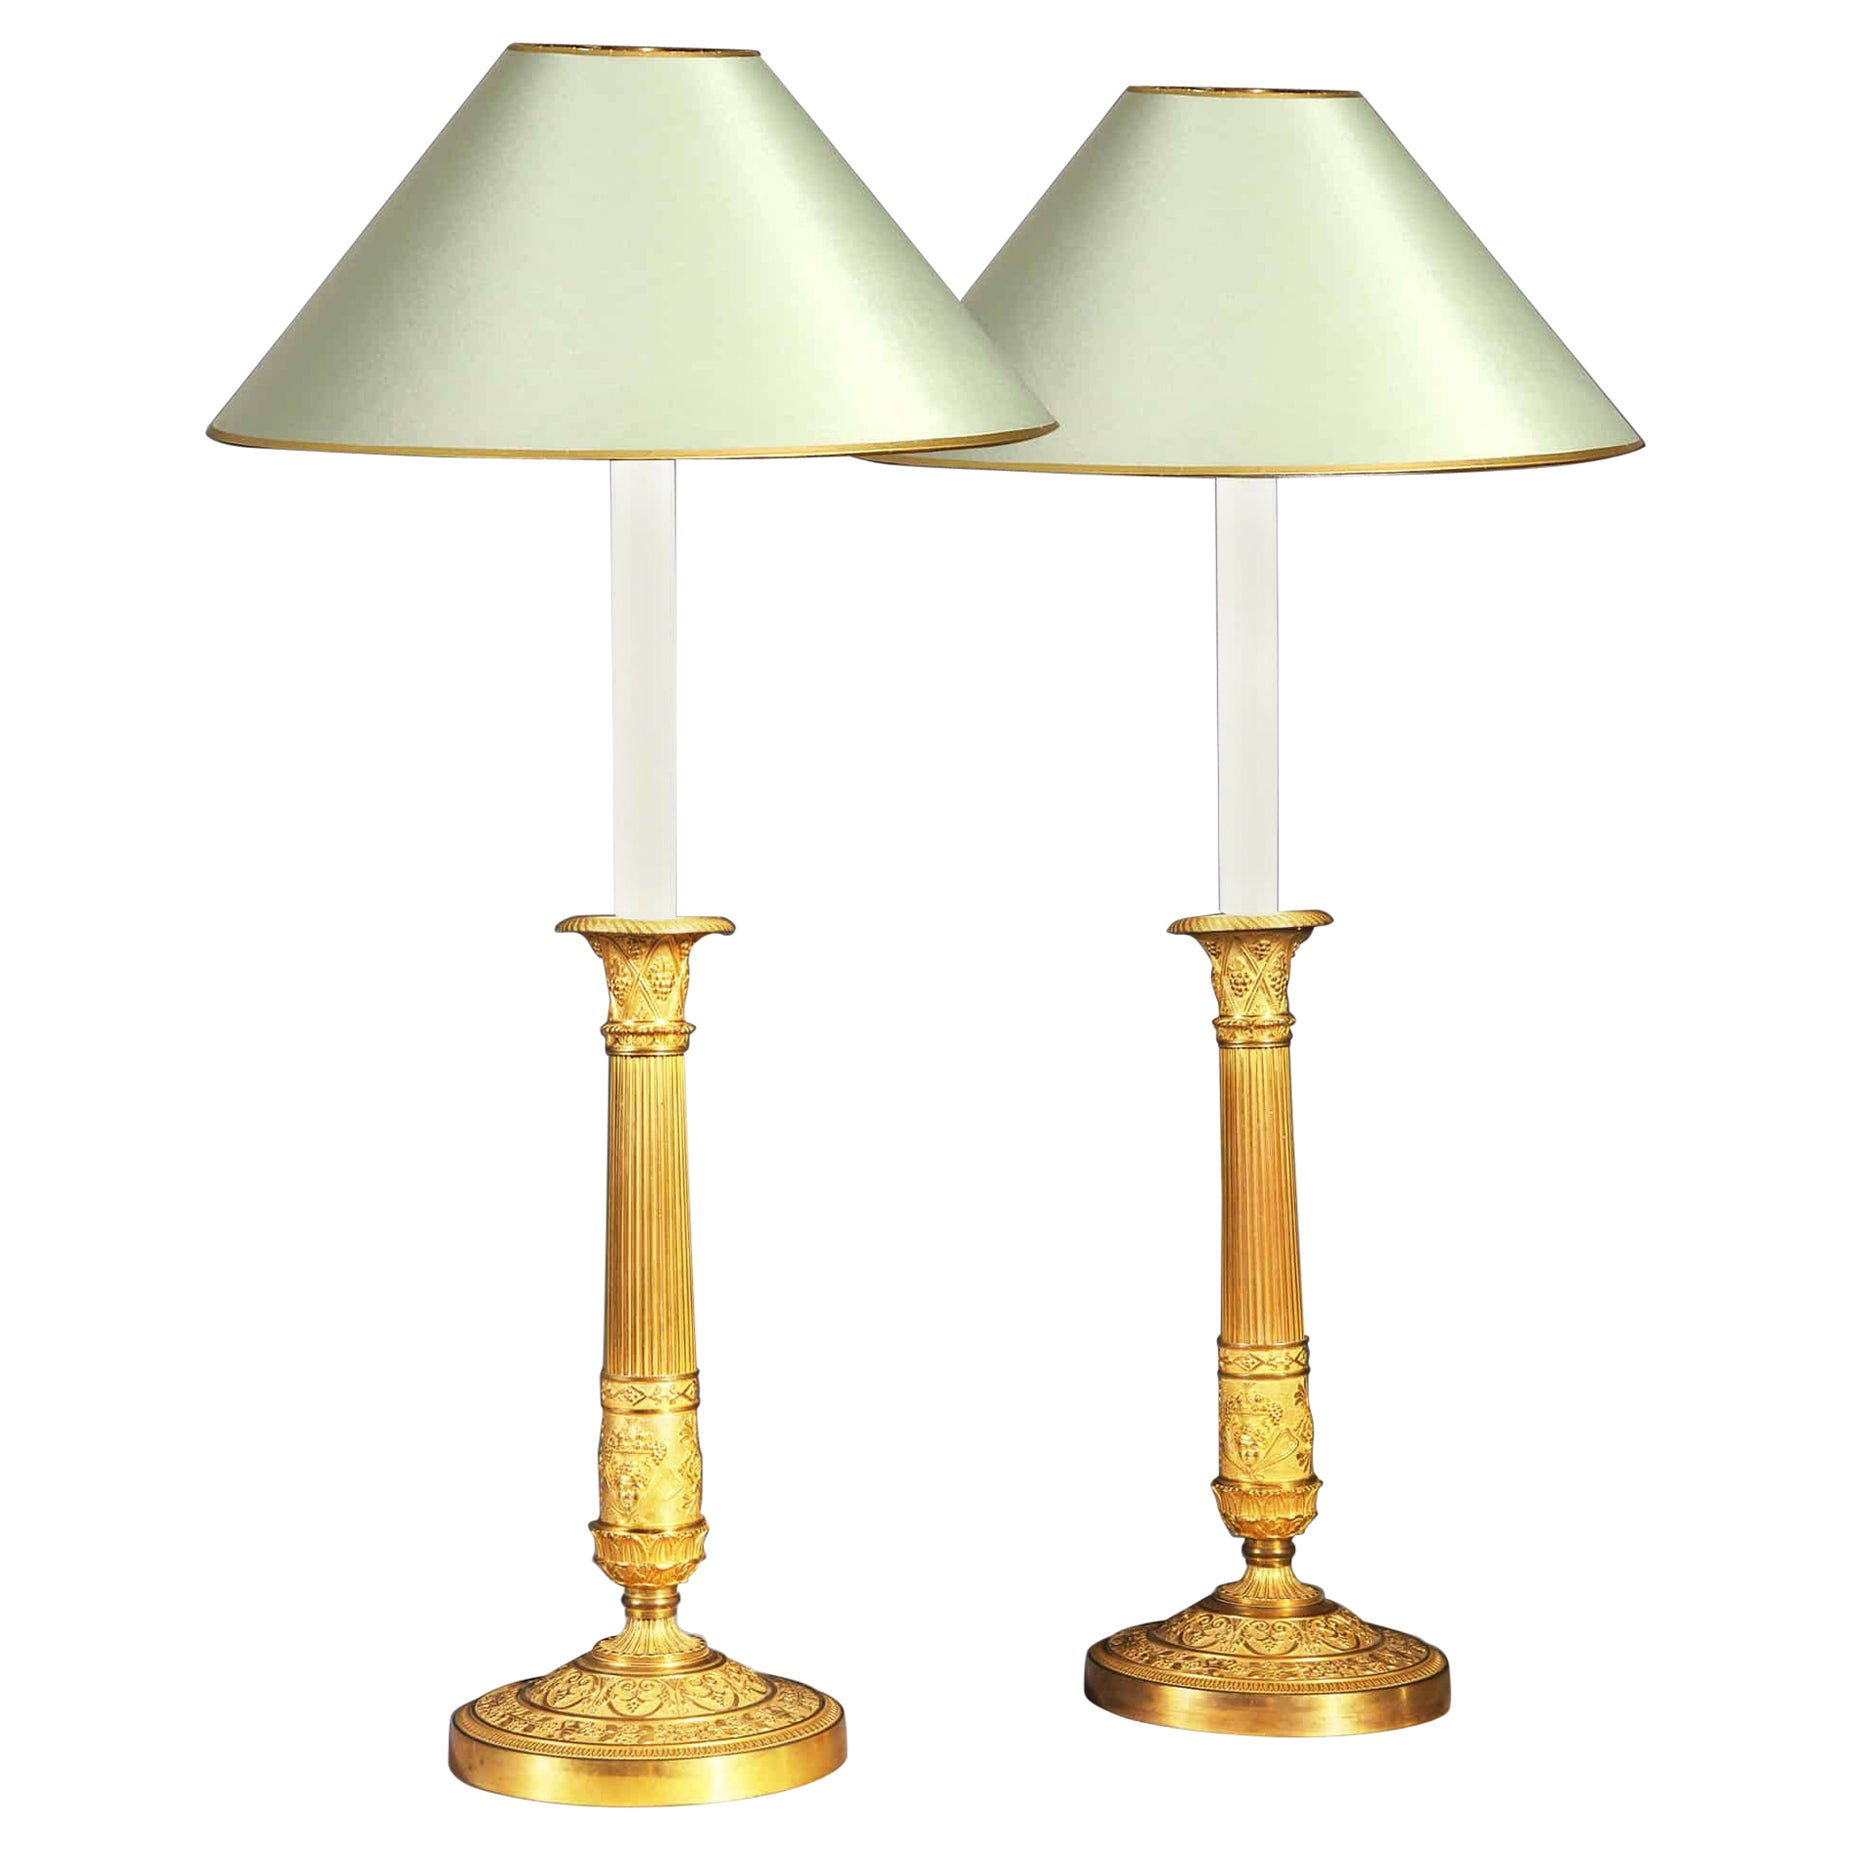 Pair of French Empire Candlesticks, Gilt Bronze Early 19th Century Desk Lamps